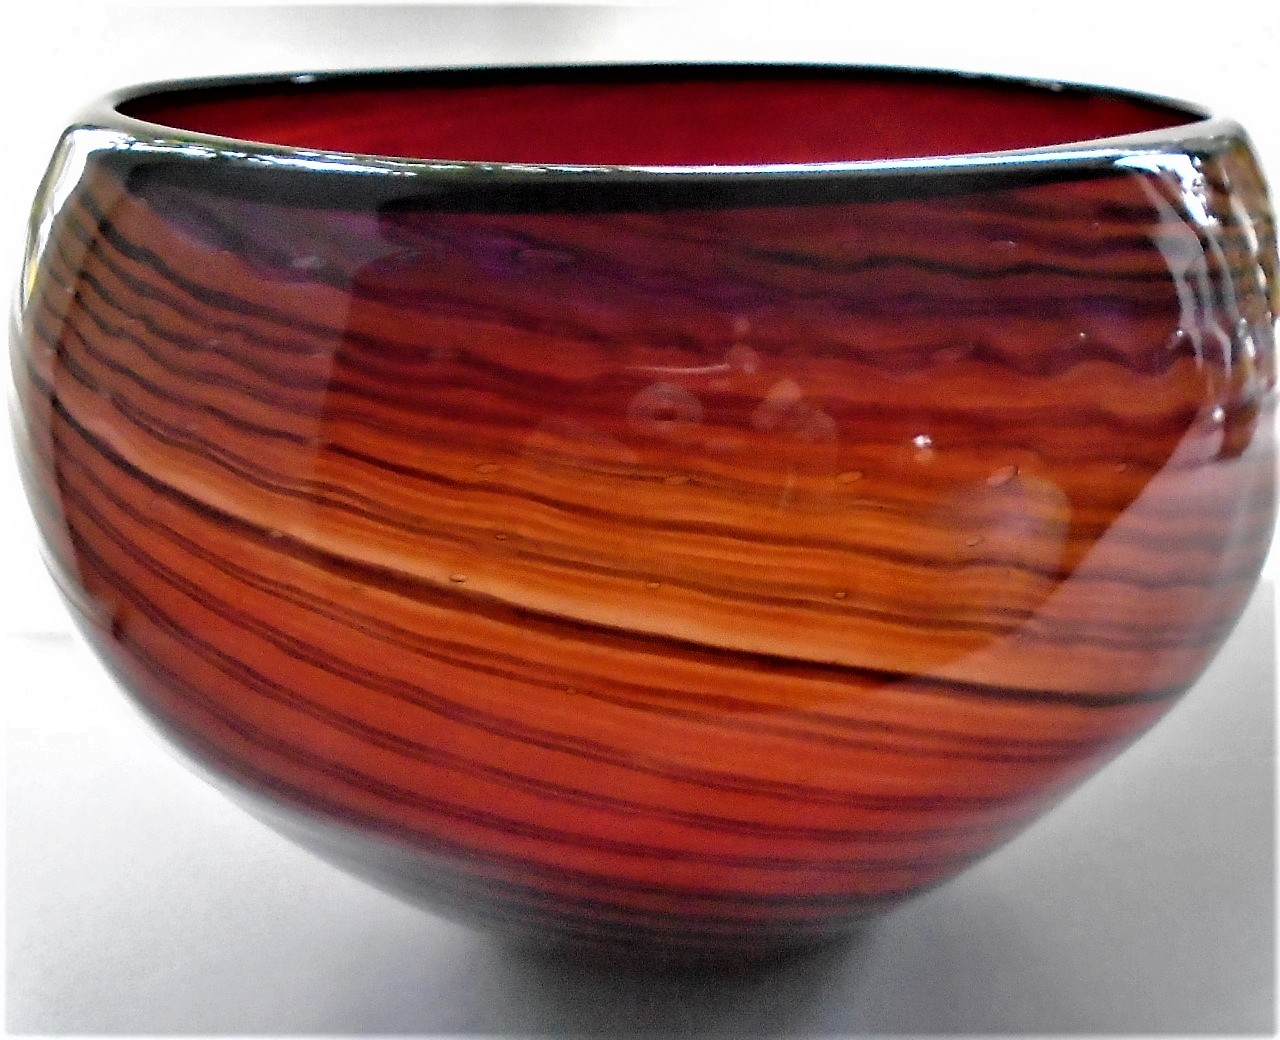 Stunning large 60s MURANO GLASS BOWL with encased spirals of reds and oranges.